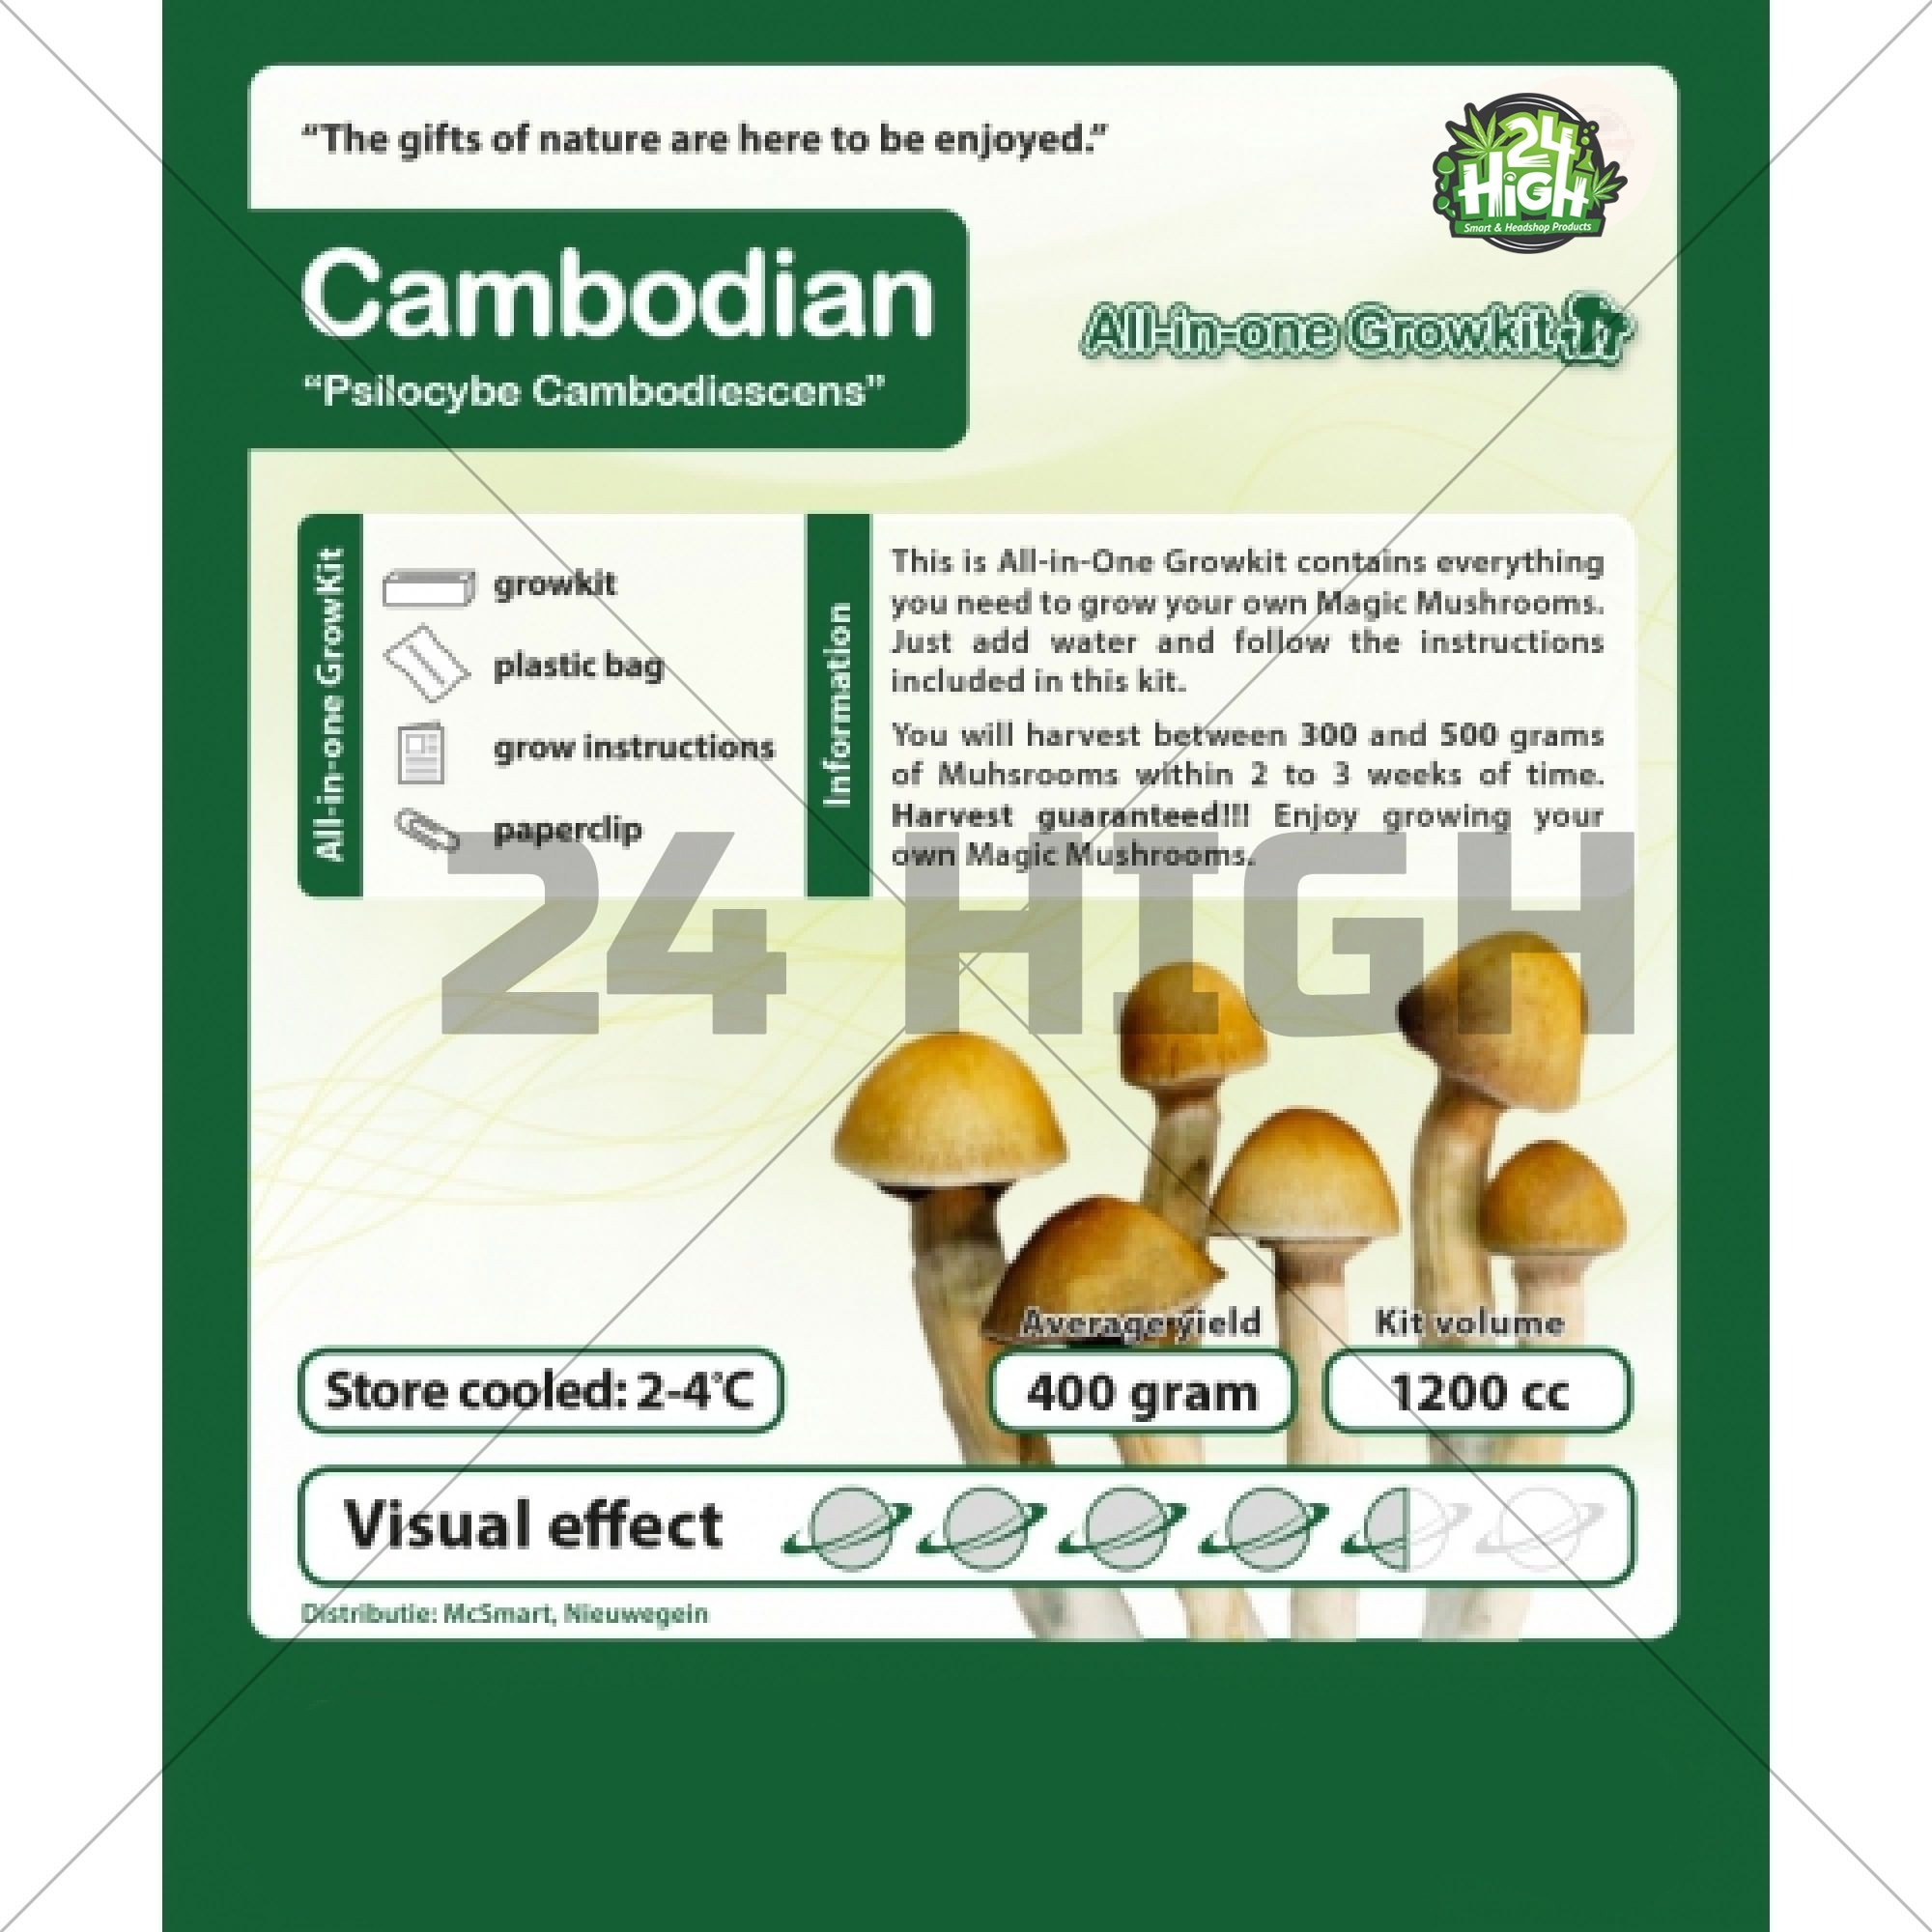 Cambodian All in one Growkit